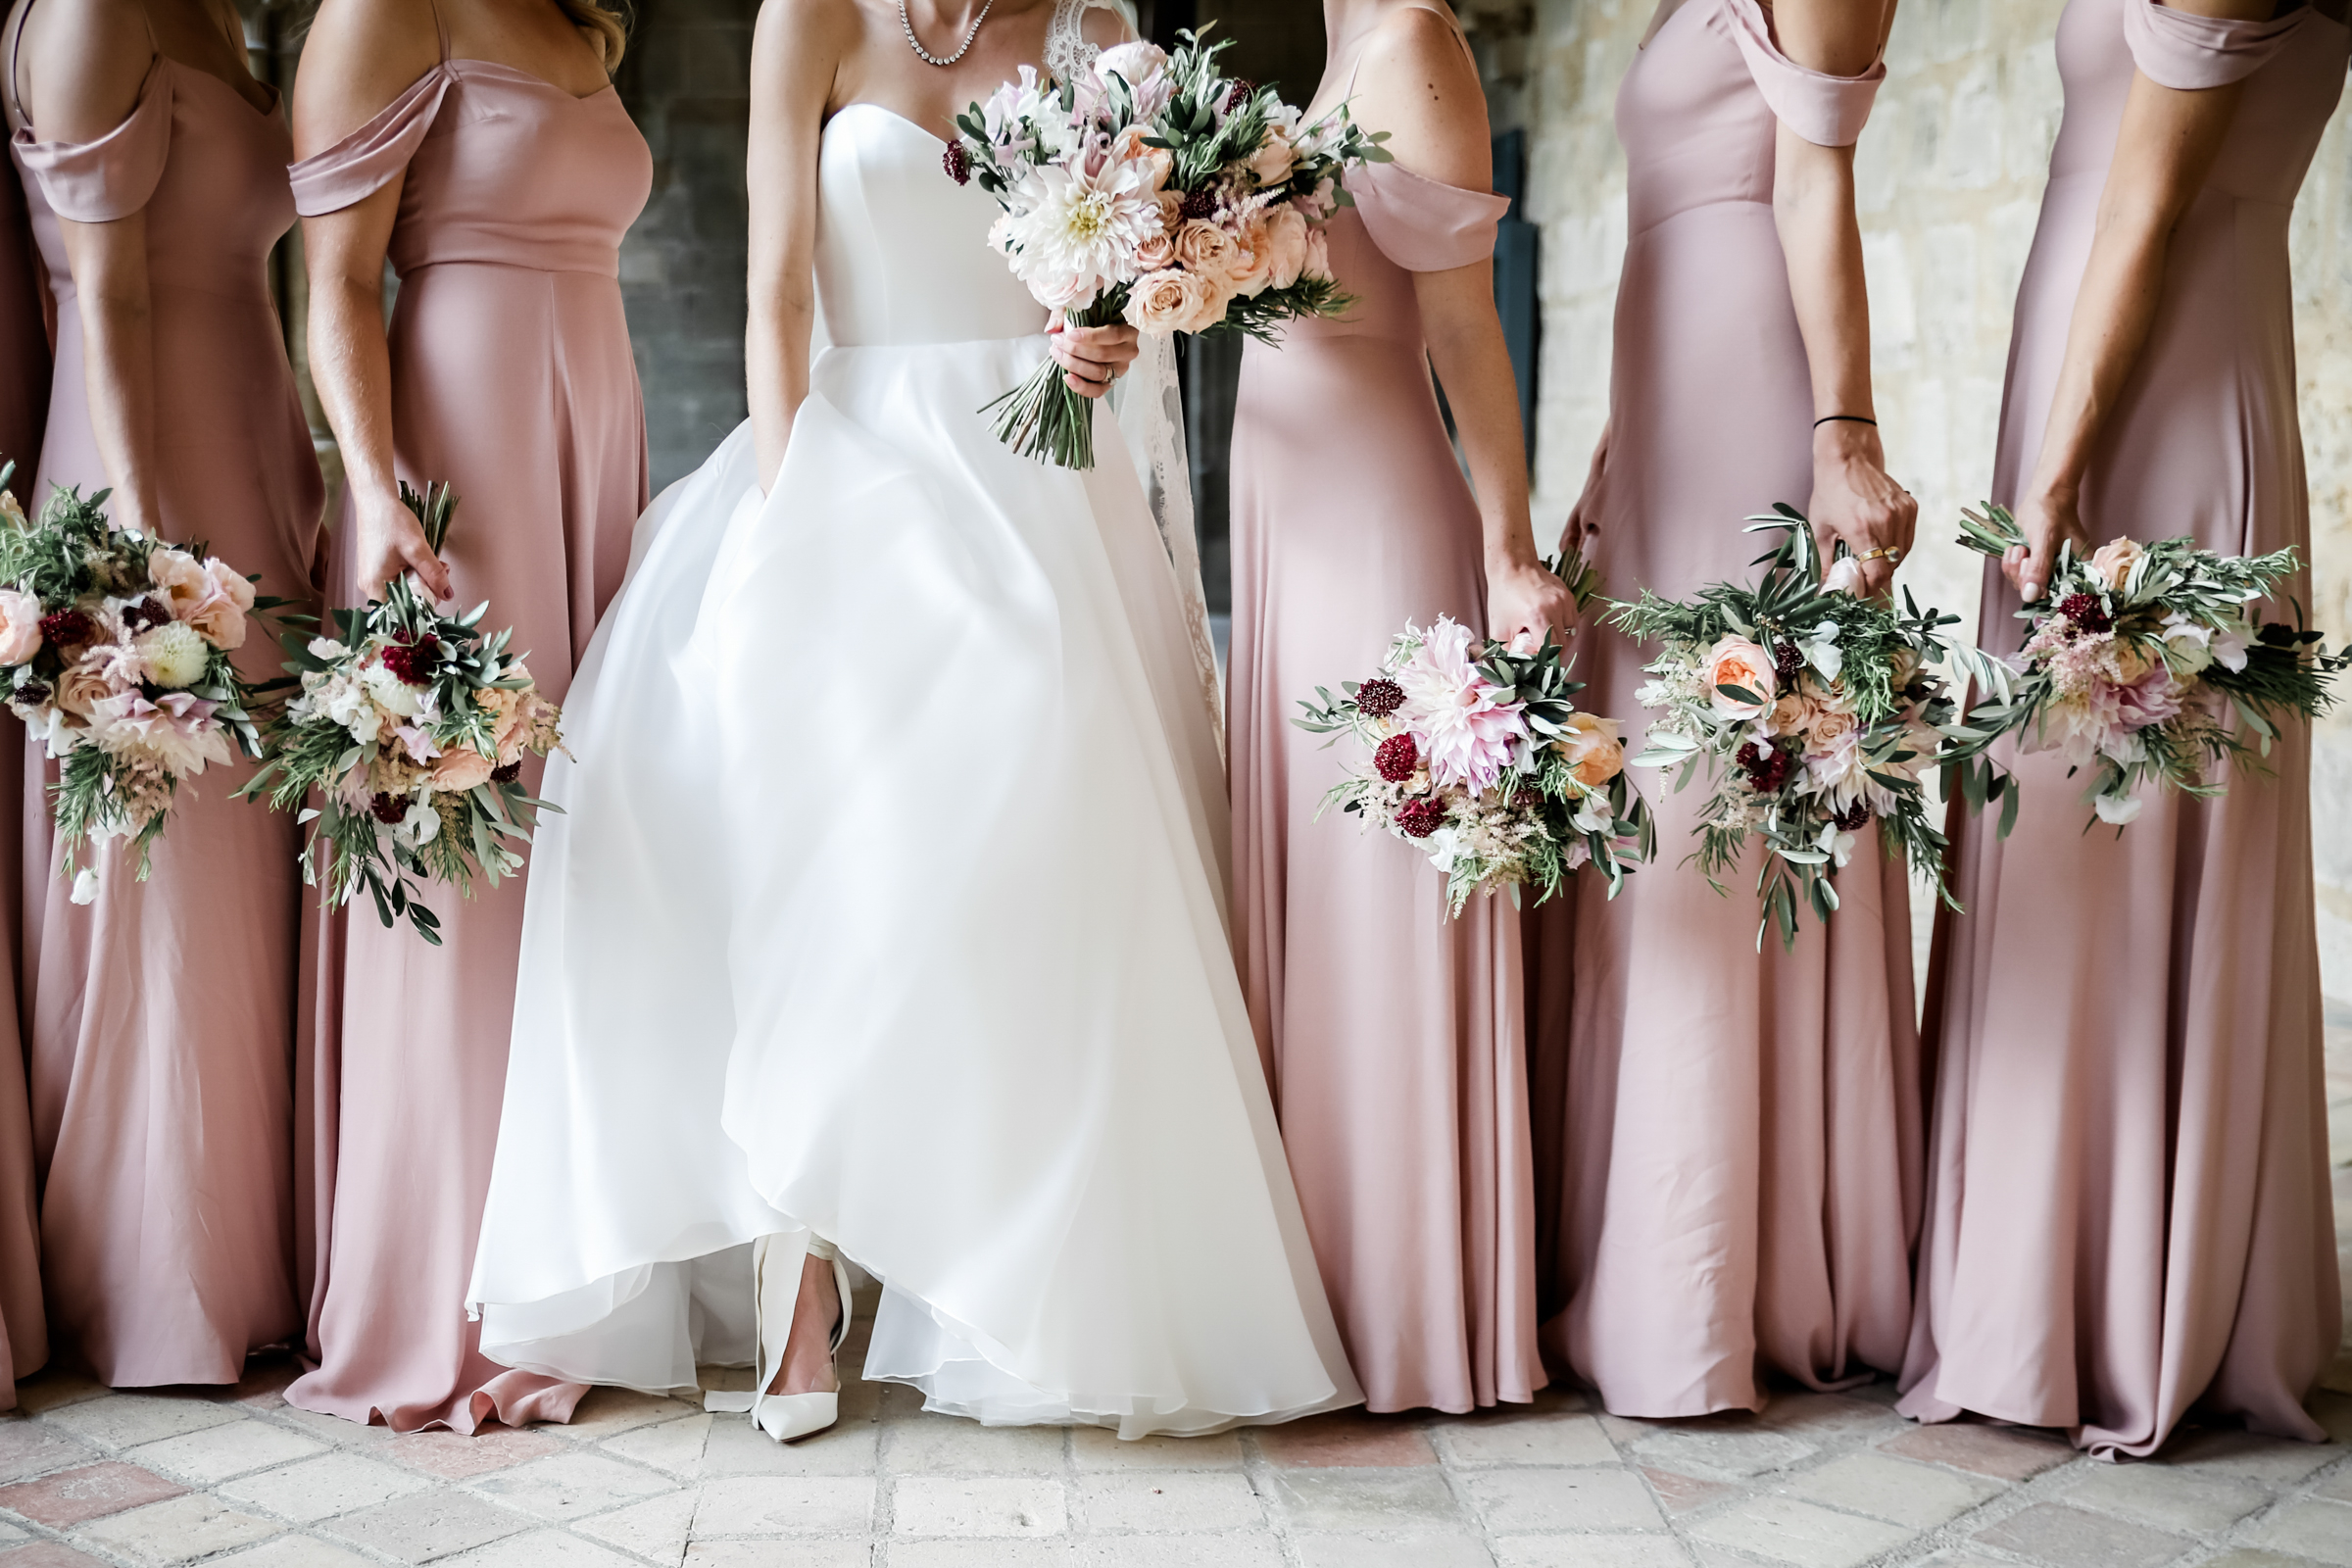 Bouquets with bride and bridesmaids - photo by Julien Laurent-Georges